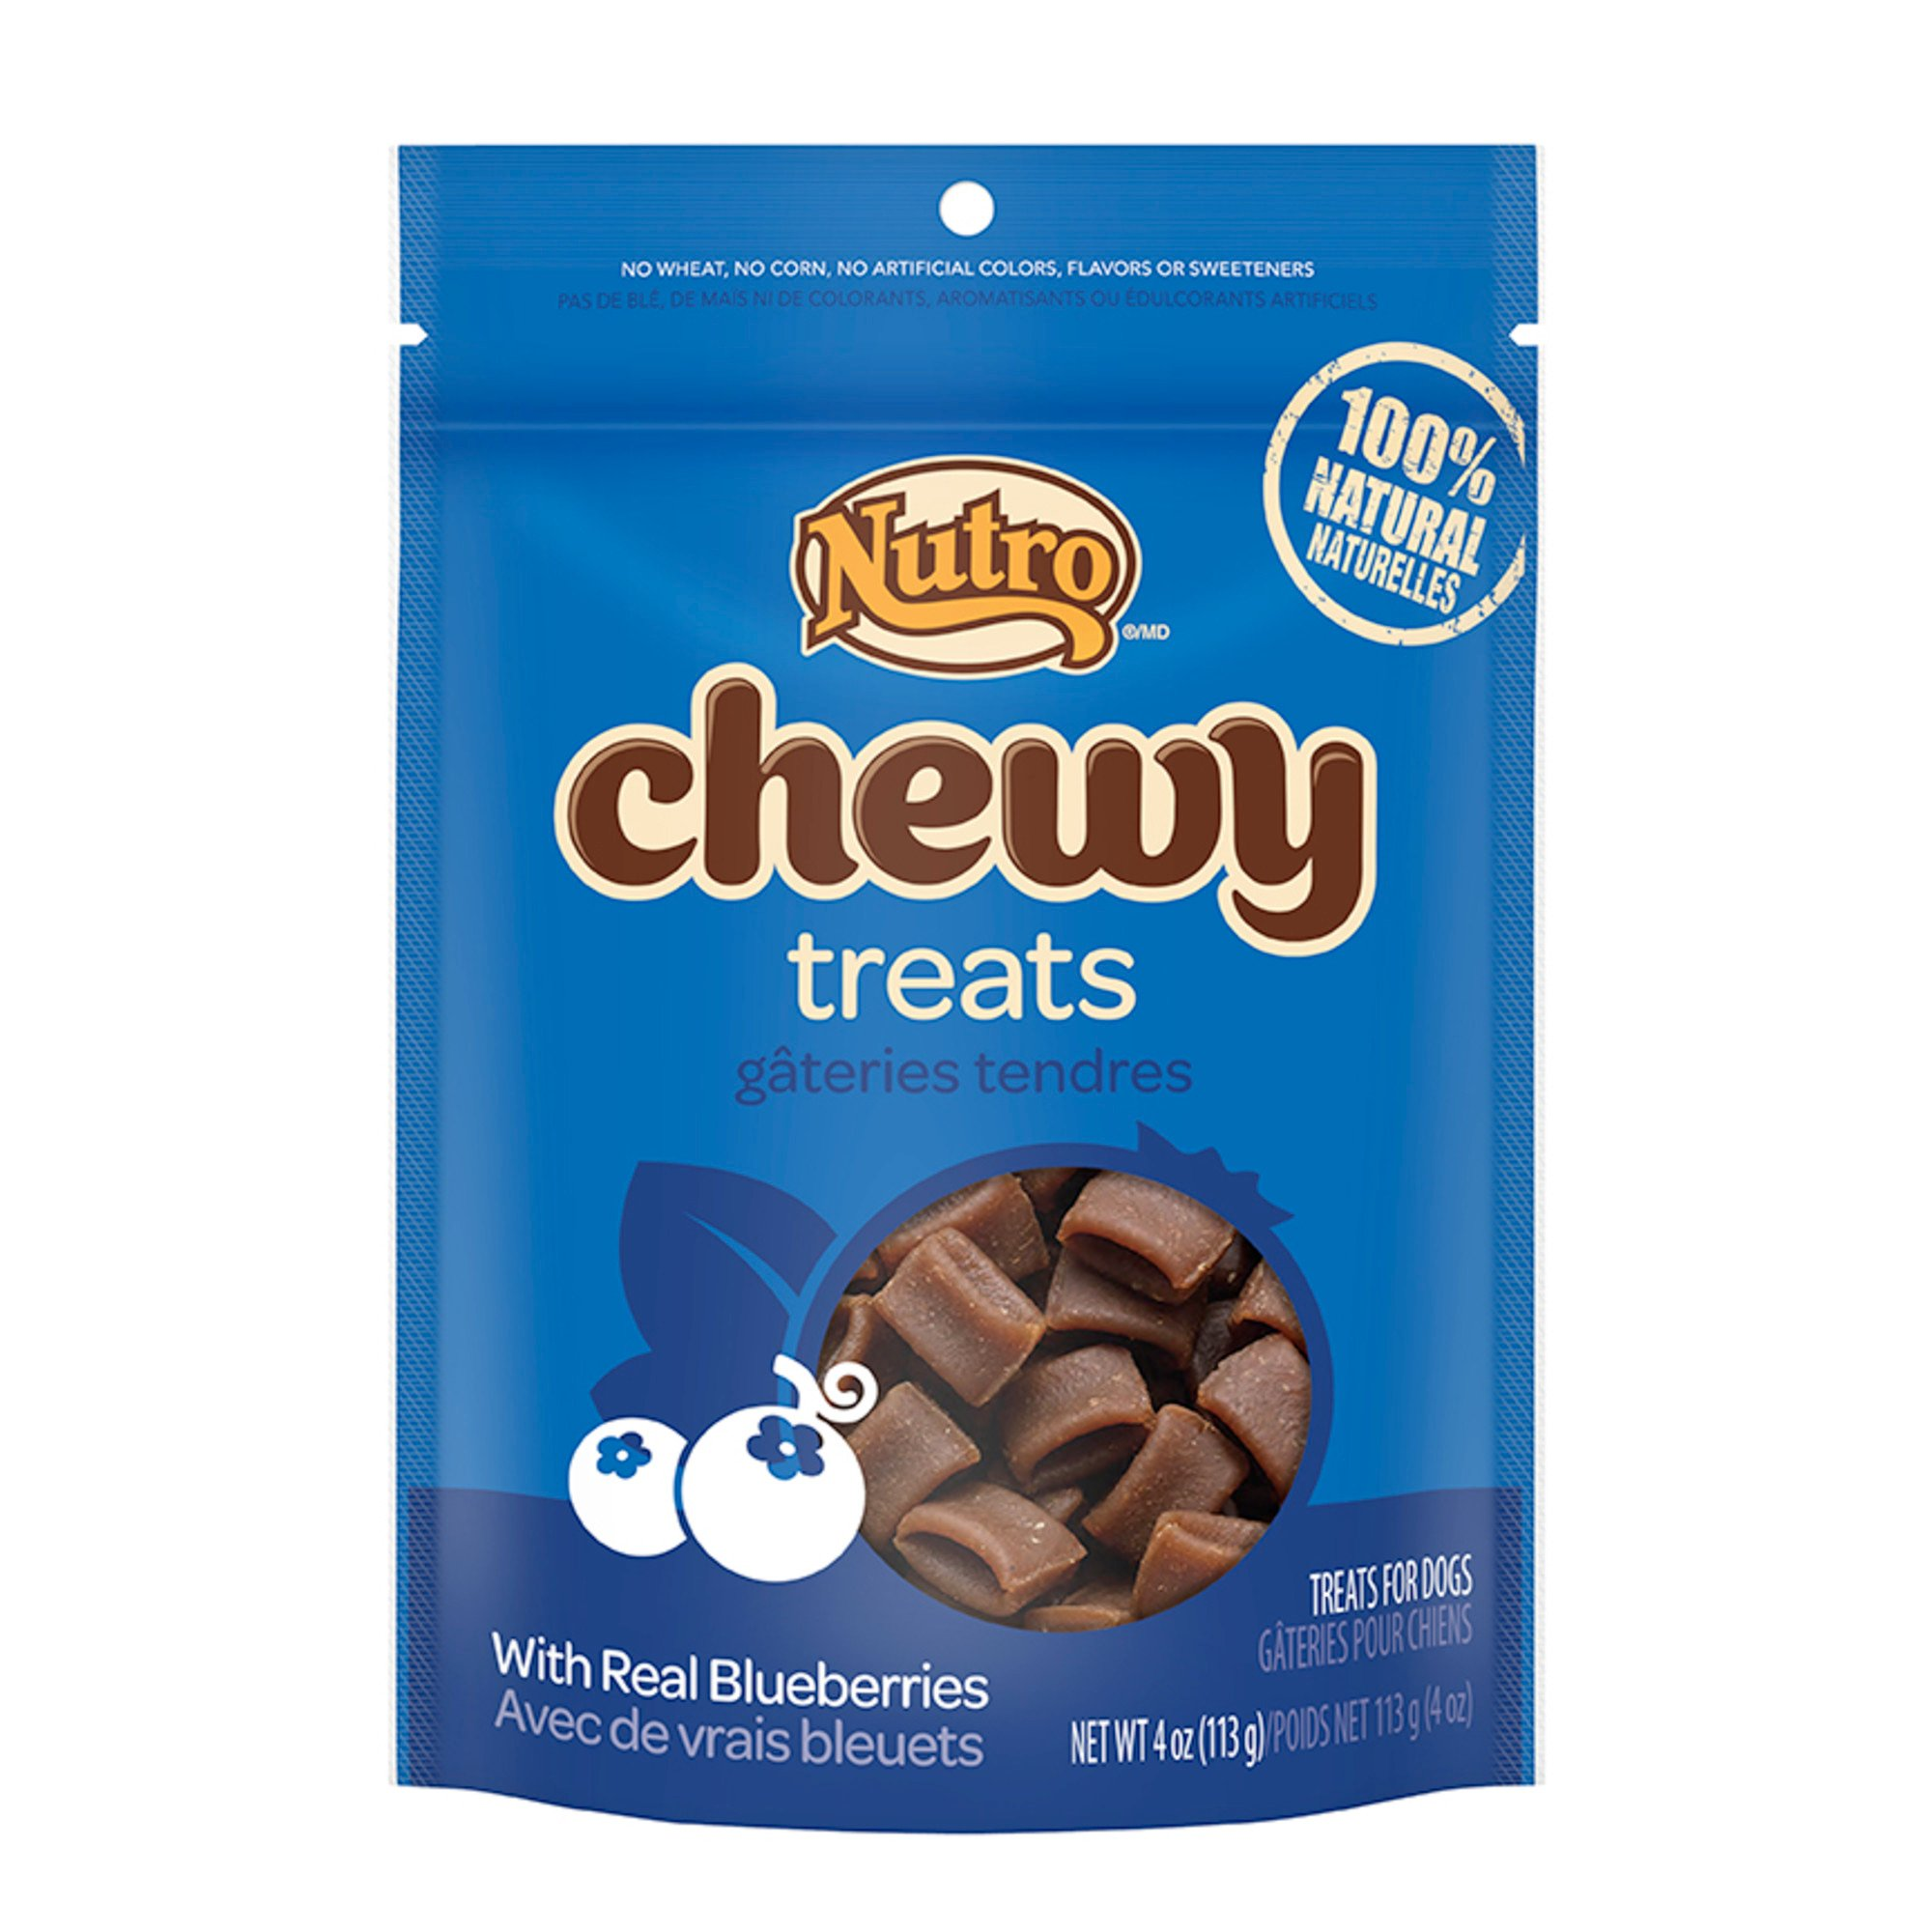 Nutro Chewy Dog Treats with Real Blueberries